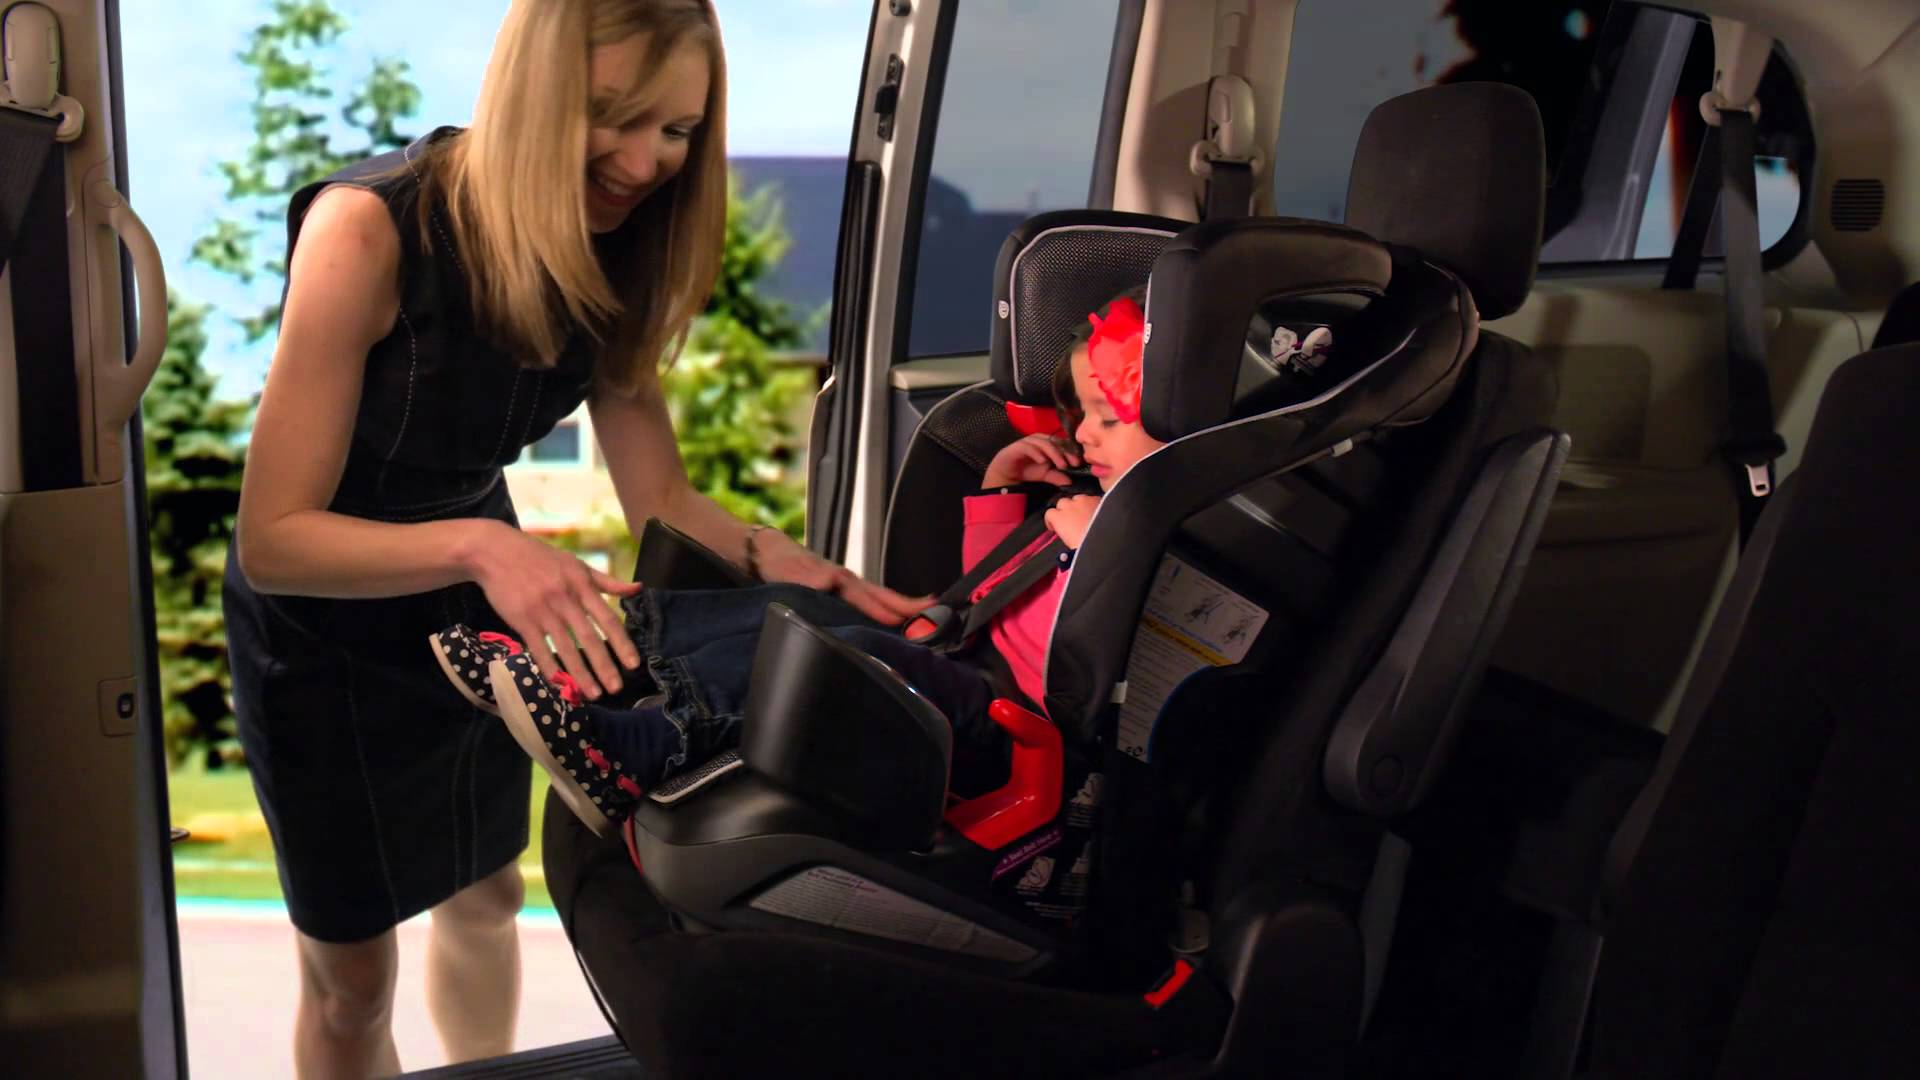 NHTSA RECALL Evenflo Transitions 3 In 1 Combination Booster Seats